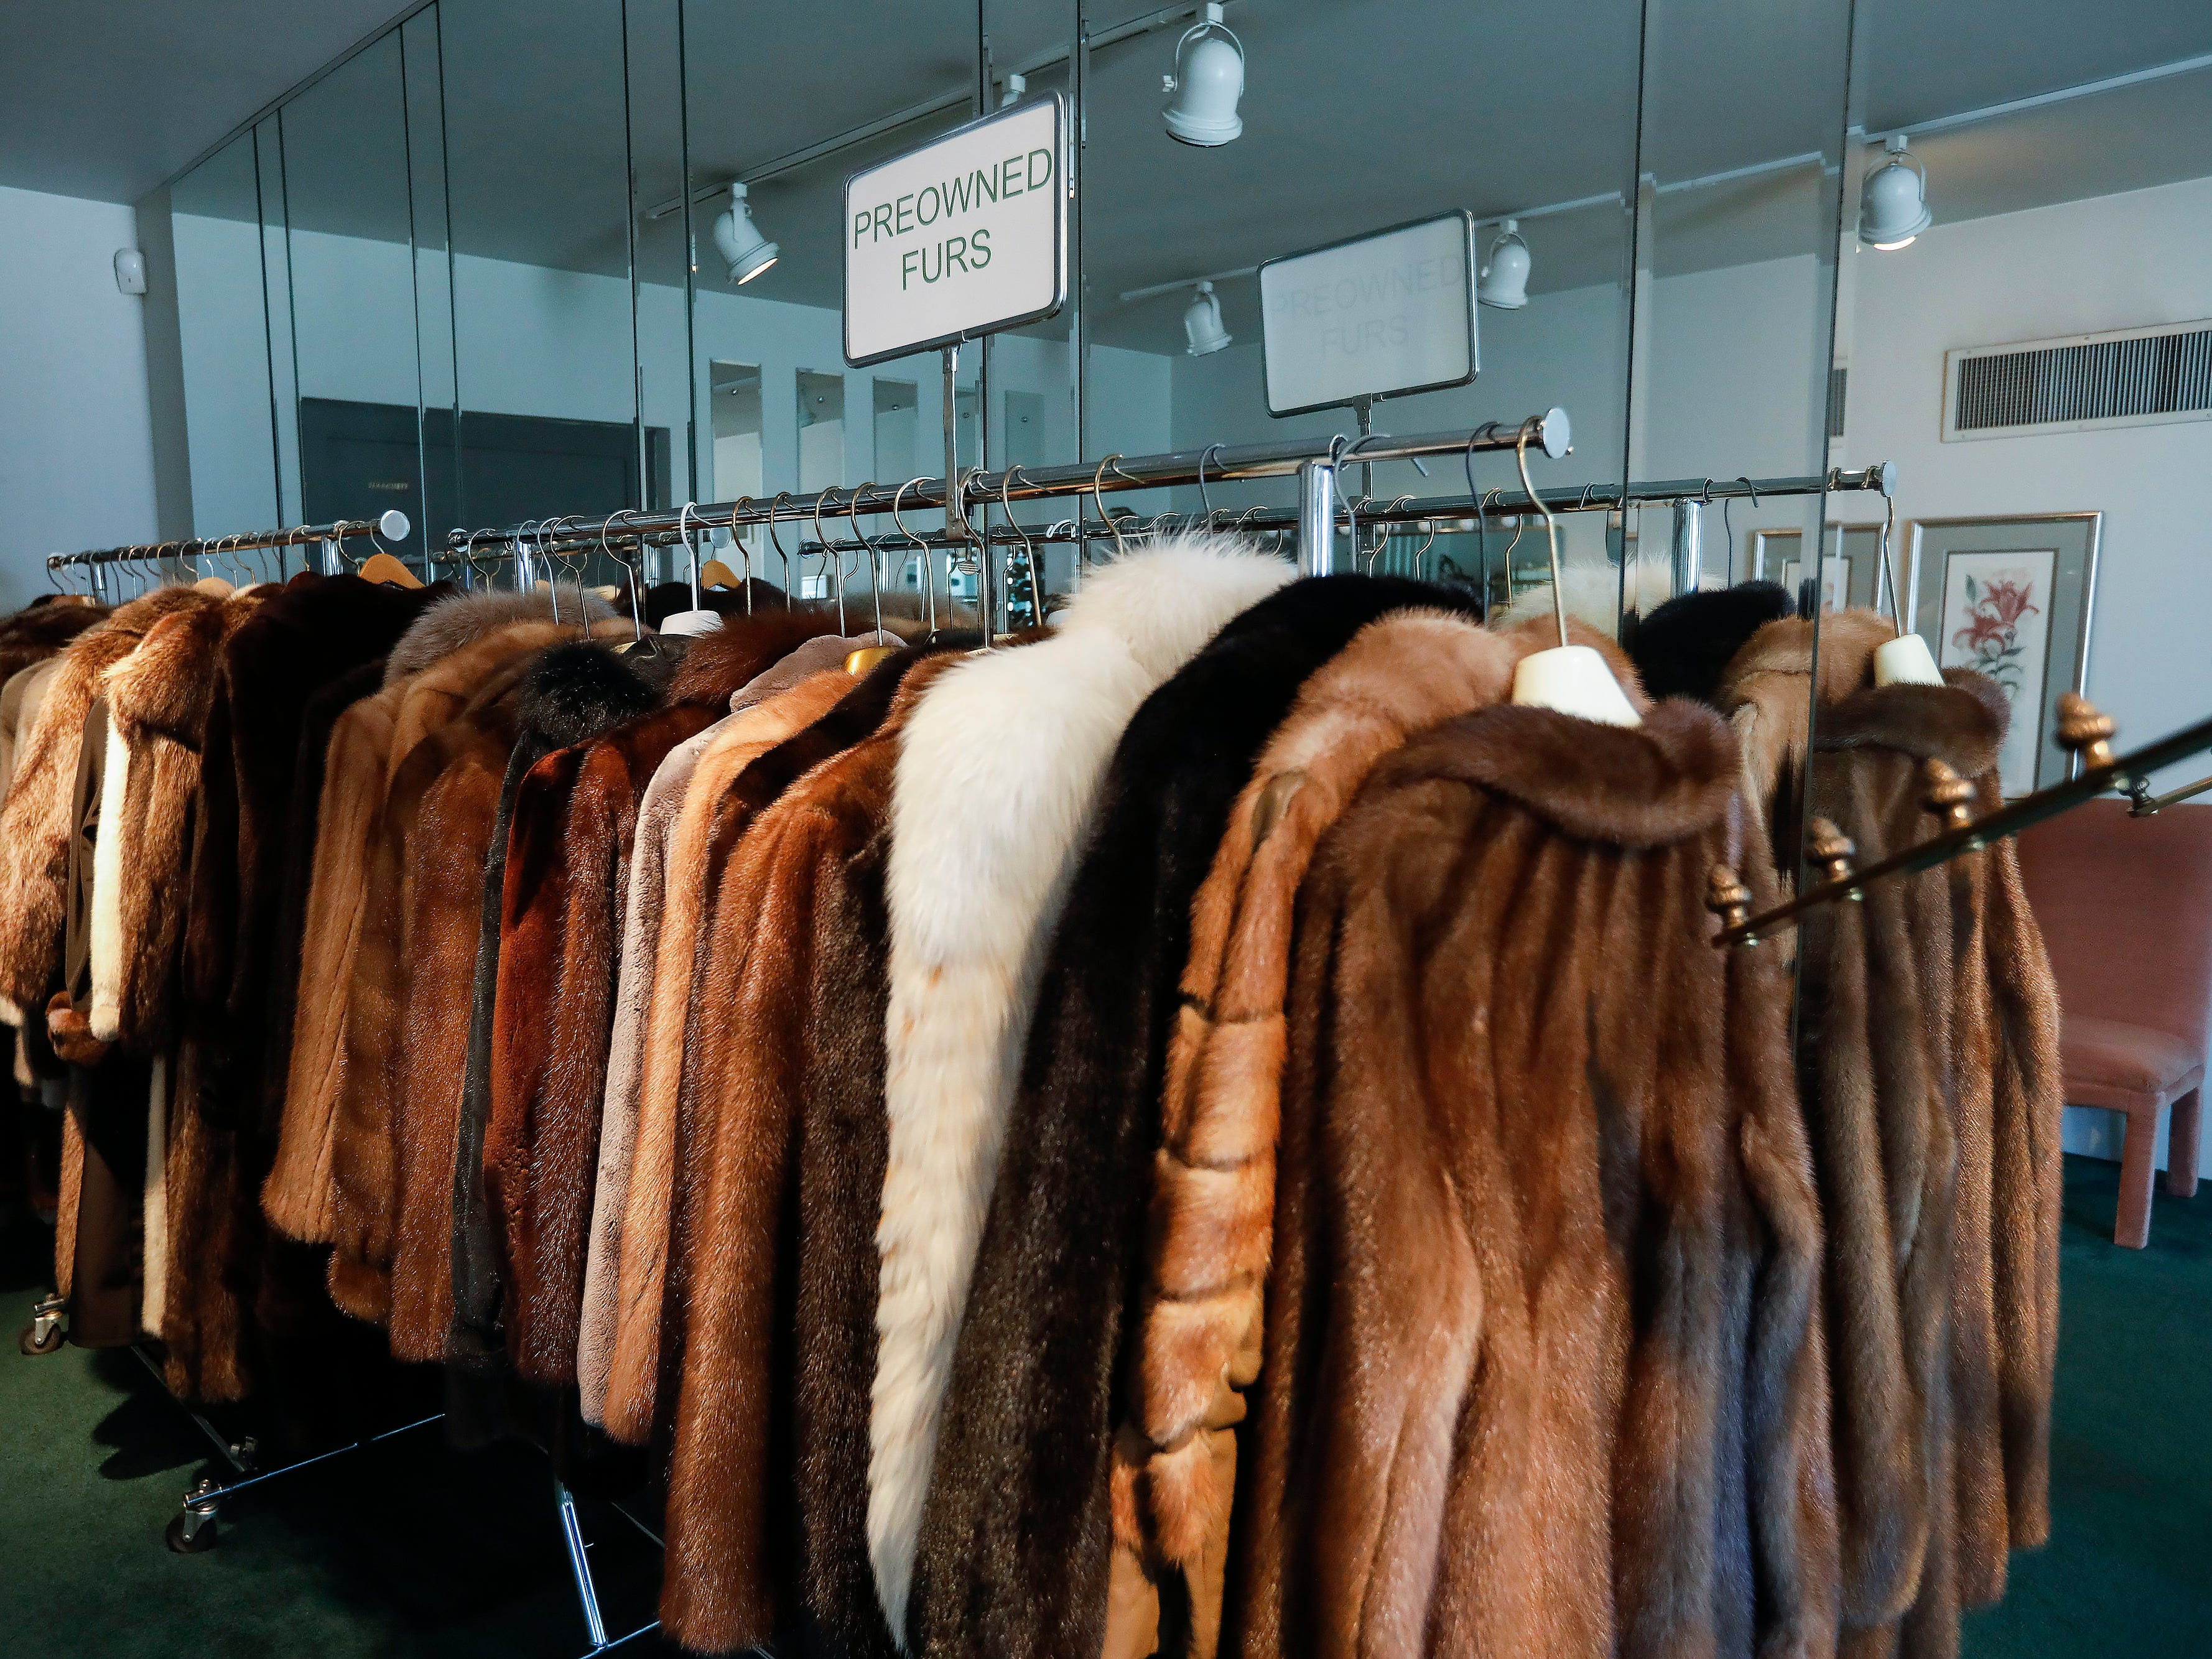 A look at some of the preowned furs for sale at McDaniel Furs, located at 901 S. Glenstone Ave.